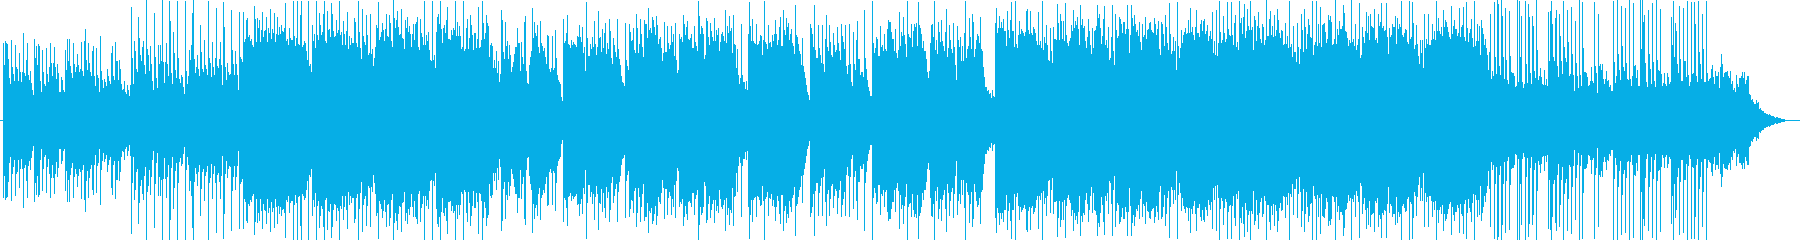 A sum of BGM characterized by lyrical shakuhachi's reproduced waveform